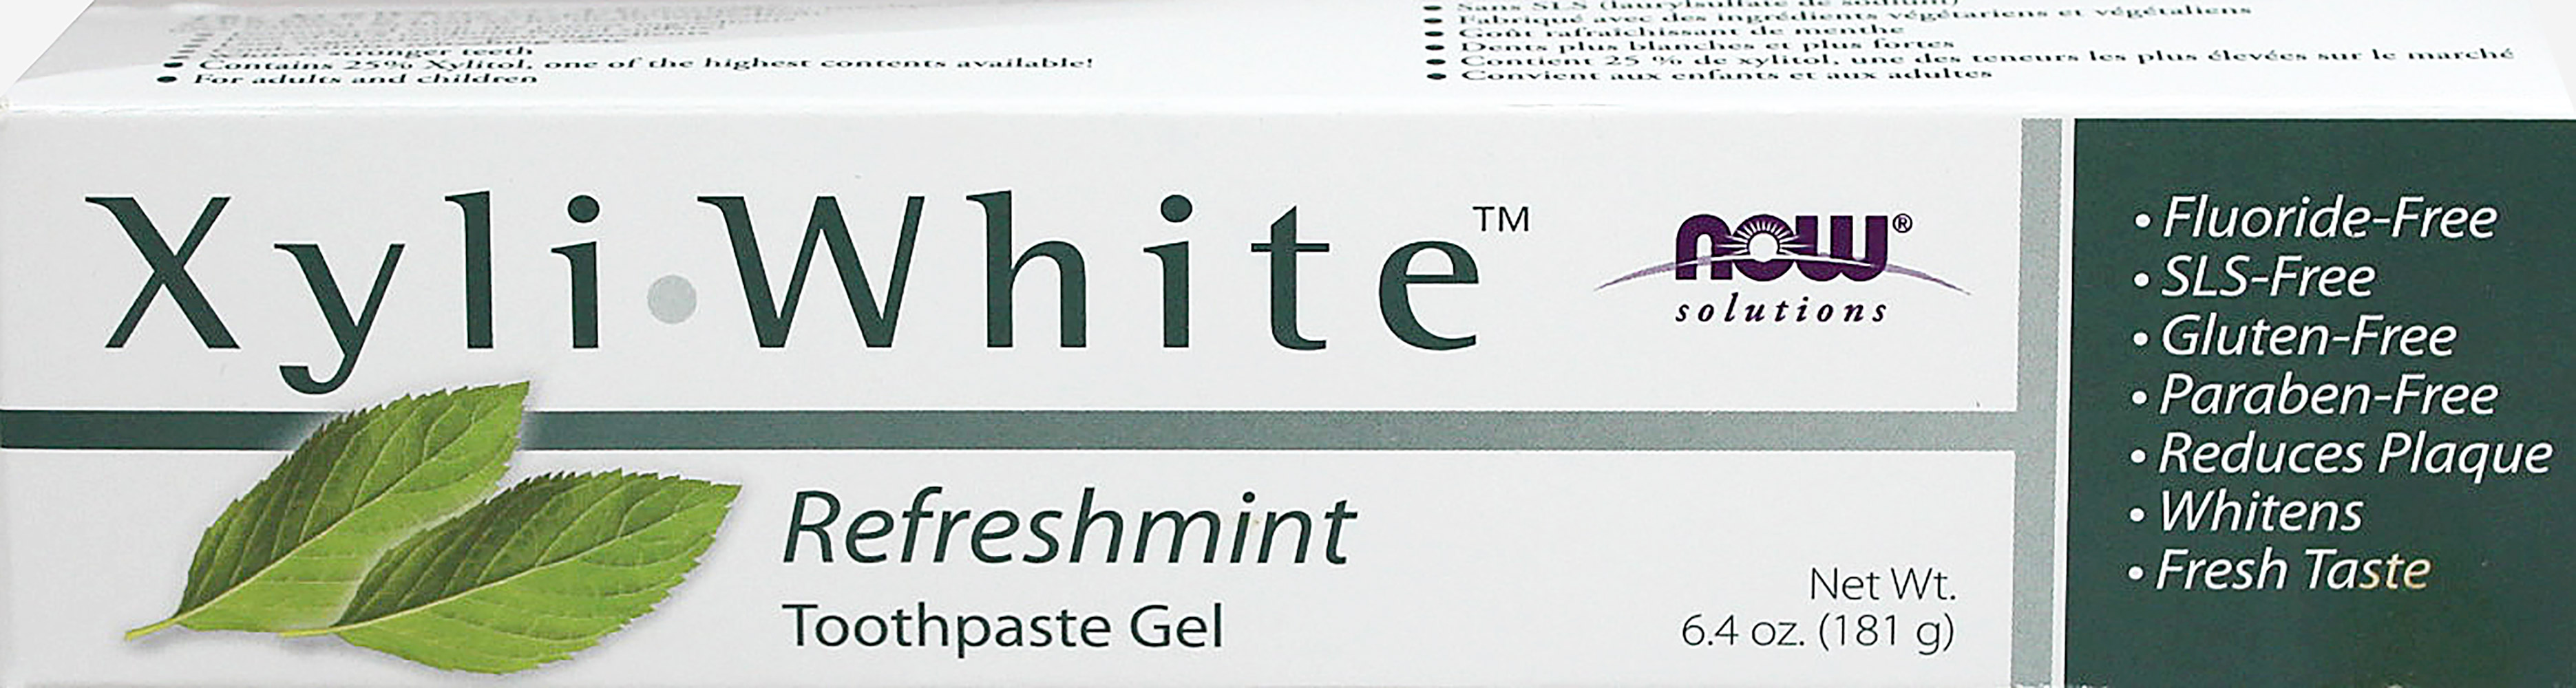 Xyliwhite Refreshmint Toothpaste Gel Fluoride-Free Thumbnail Alternate Bottle View